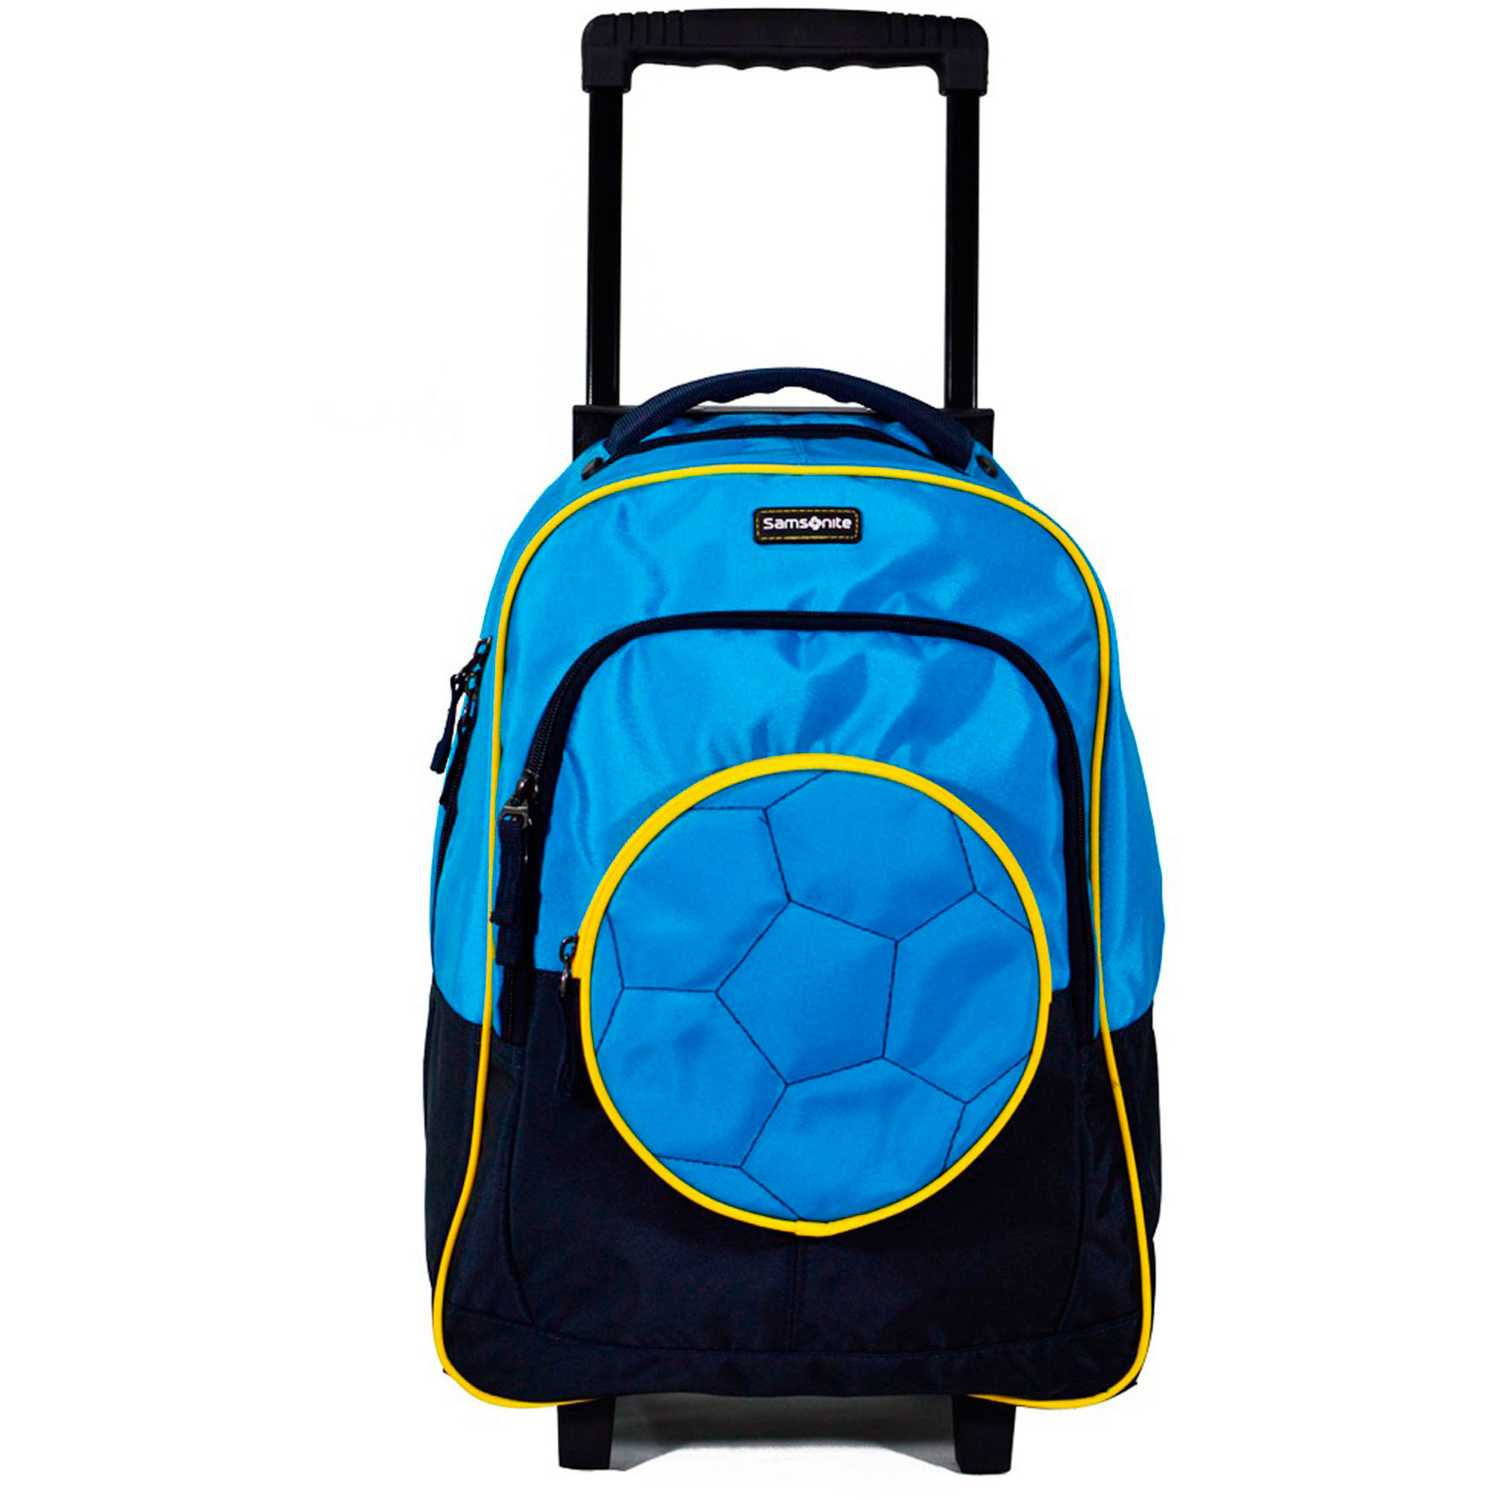 Maletas de Hombre Samsonite Celeste / amarillo trolley blue/yellow motion kick